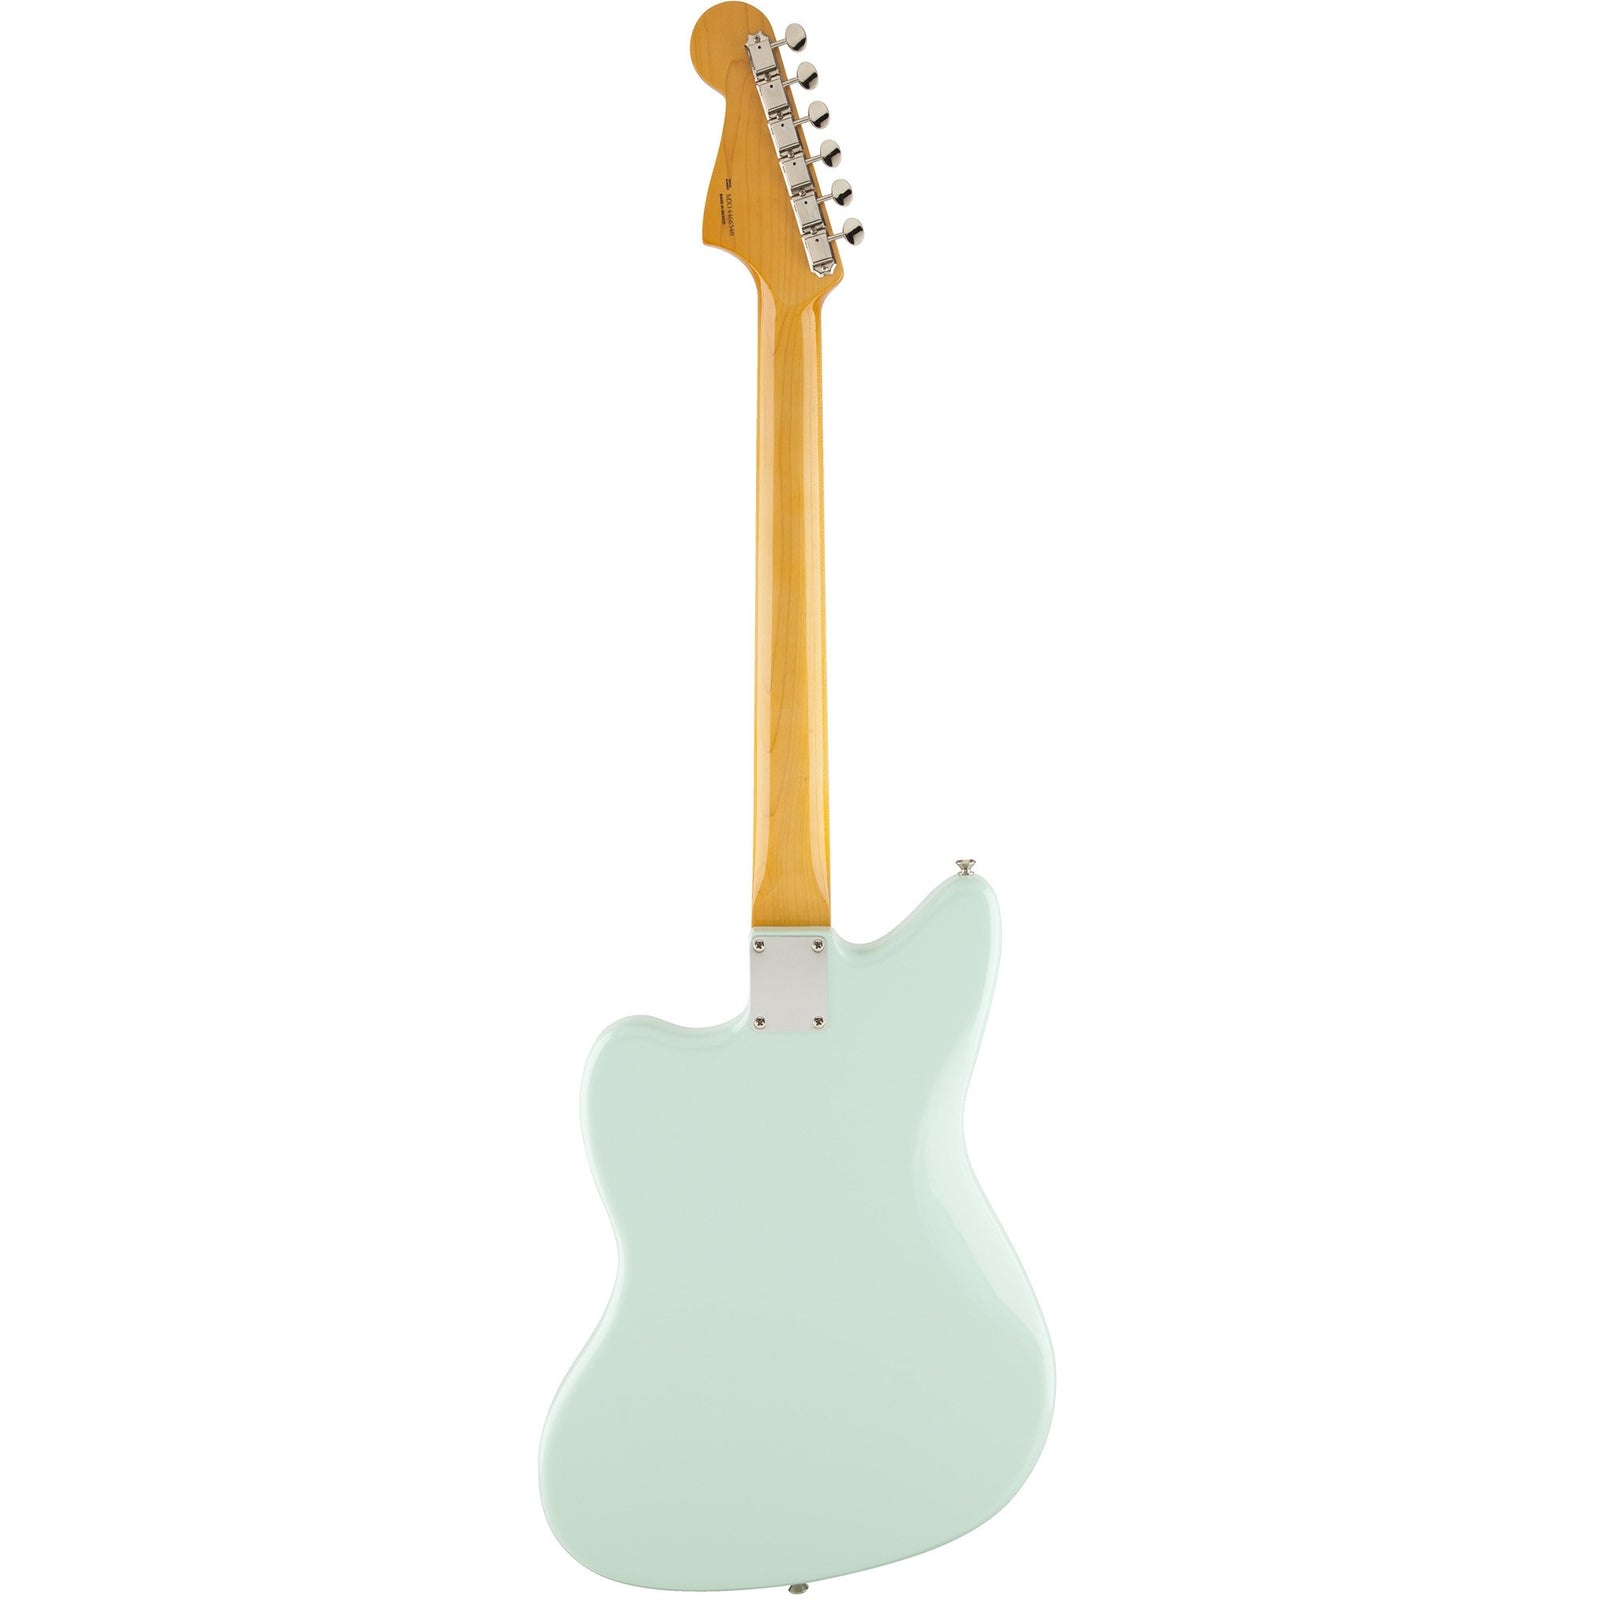 Fender 60S Jazzmaster Lacquer - Rosewood Fingerboard - Surf Green